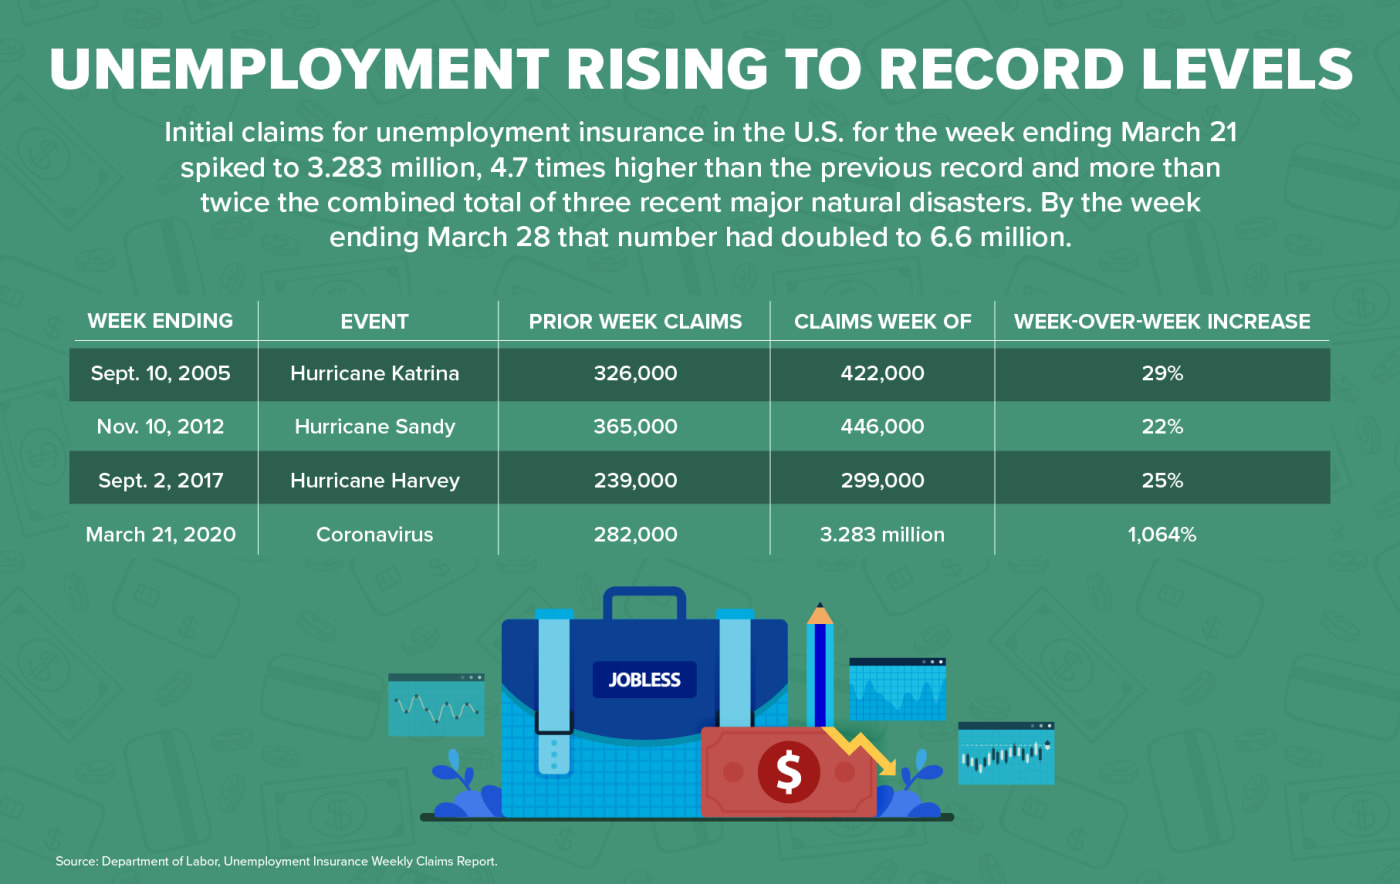 Unemployment Rising to Record Levels